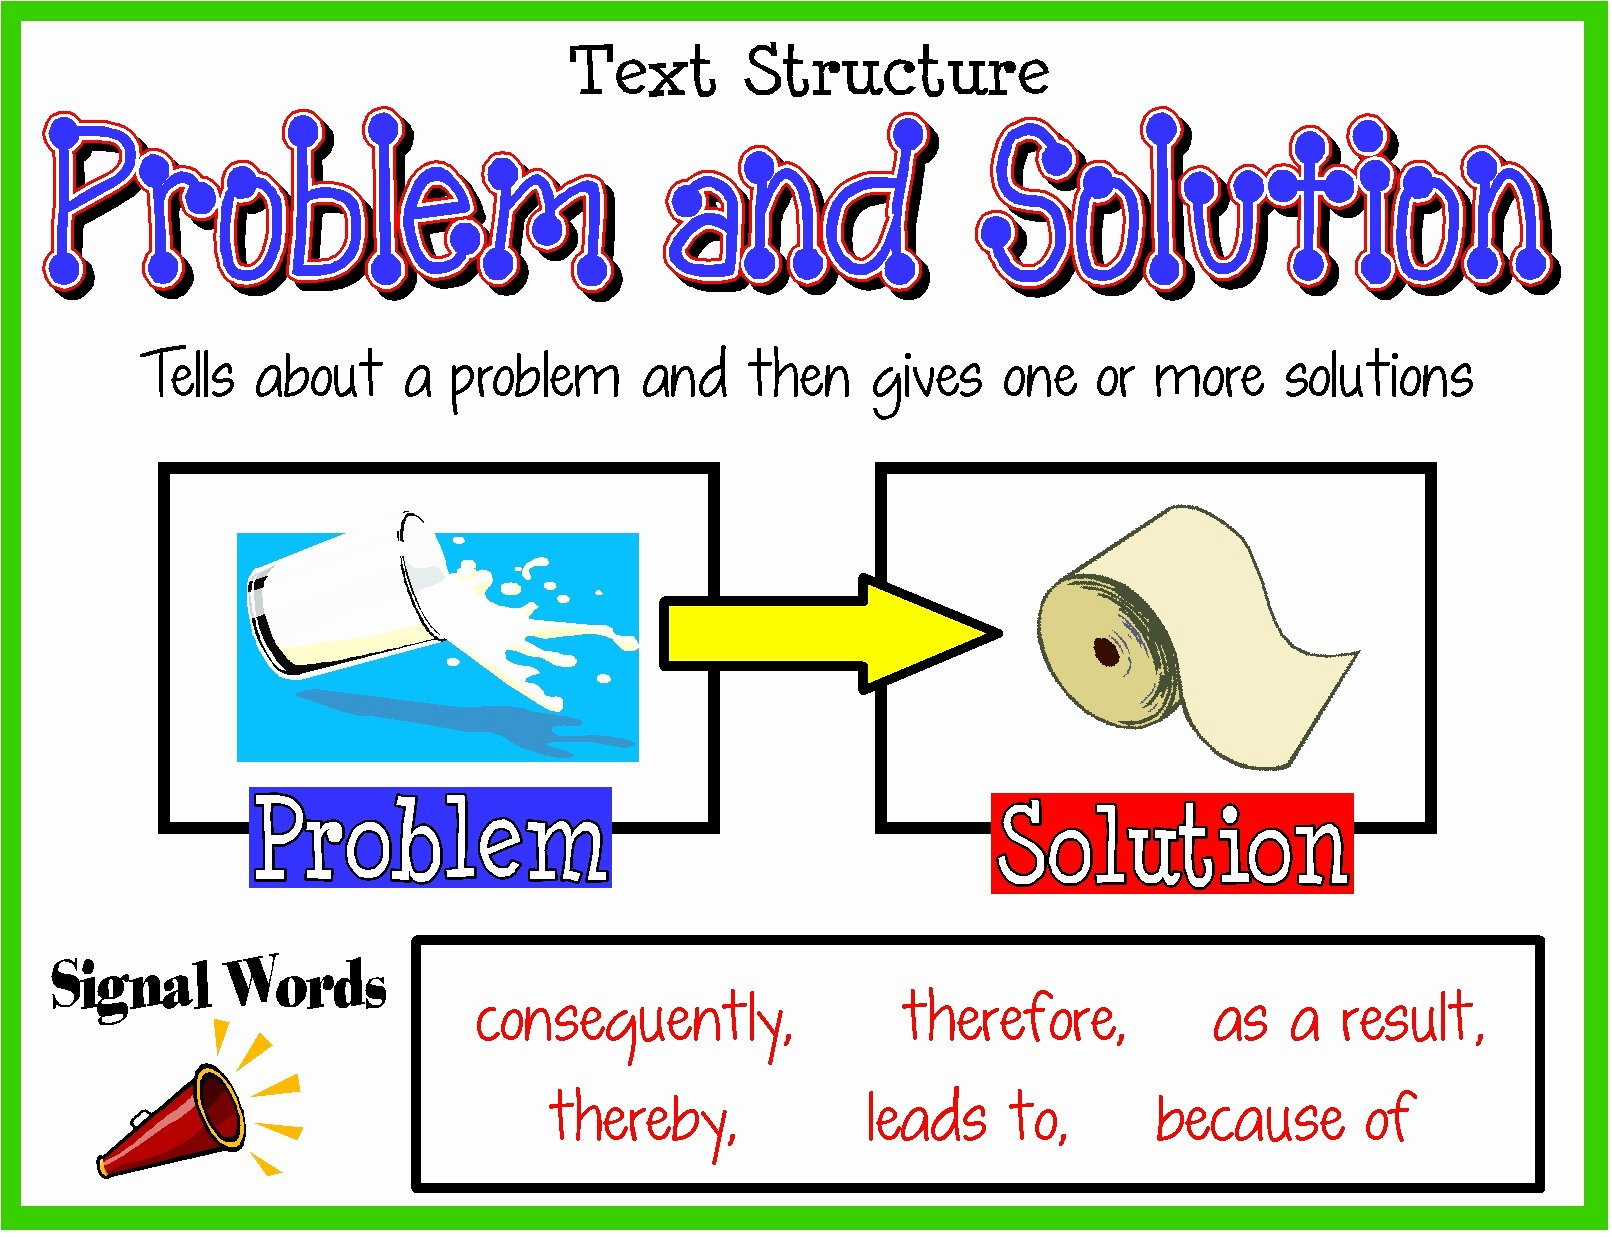 Text Structure Worksheet 4th Grade Luxury Information for Students Mrs Galindo & Mrs Escalada S